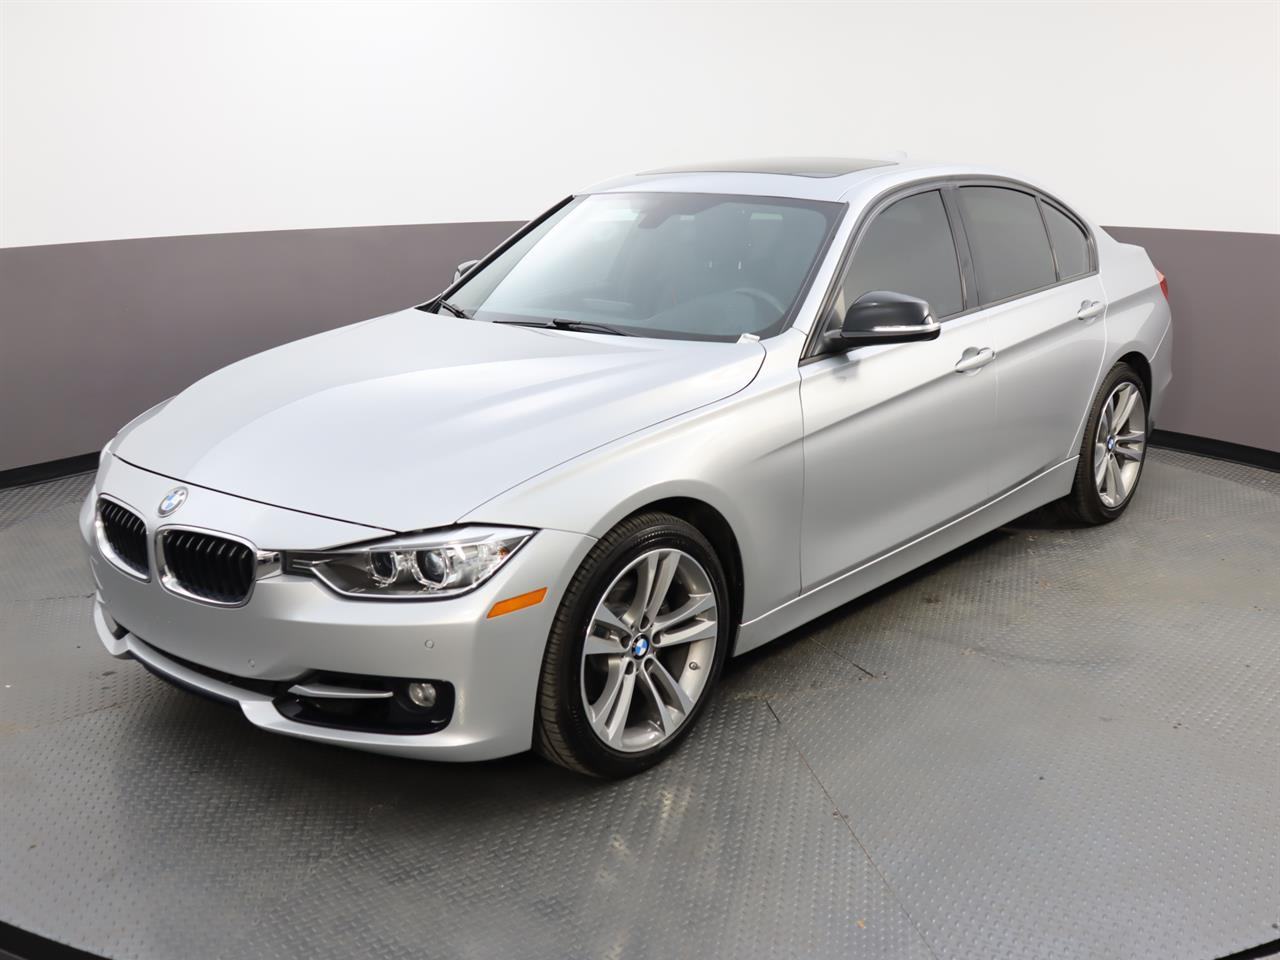 Used BMW 3-SERIES 2015 MARGATE 328I